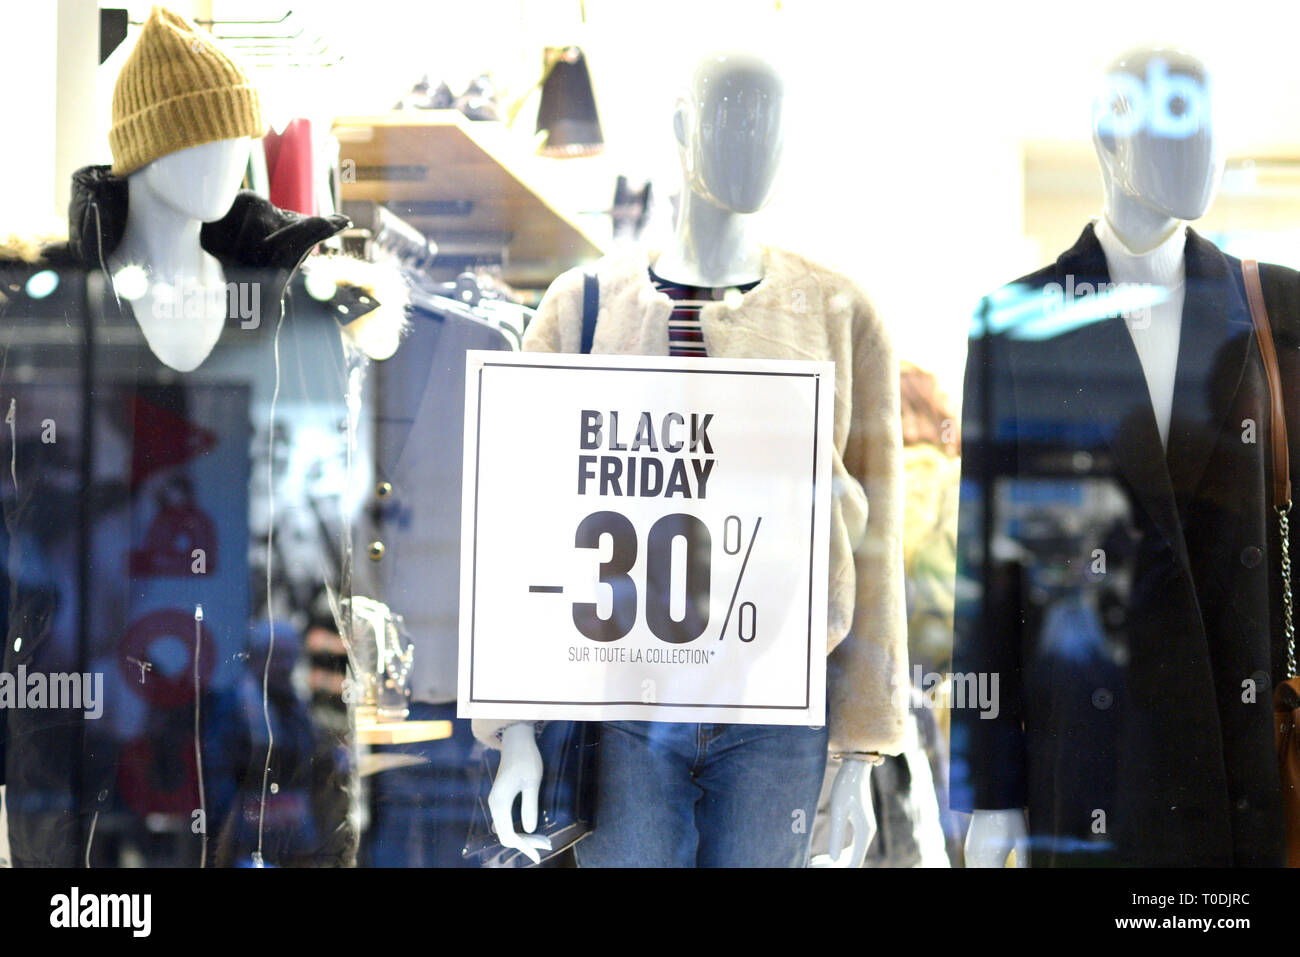 Poster 'Black Friday, 30% off the entire collection' on a shop window on November 23, 2018 - Stock Image